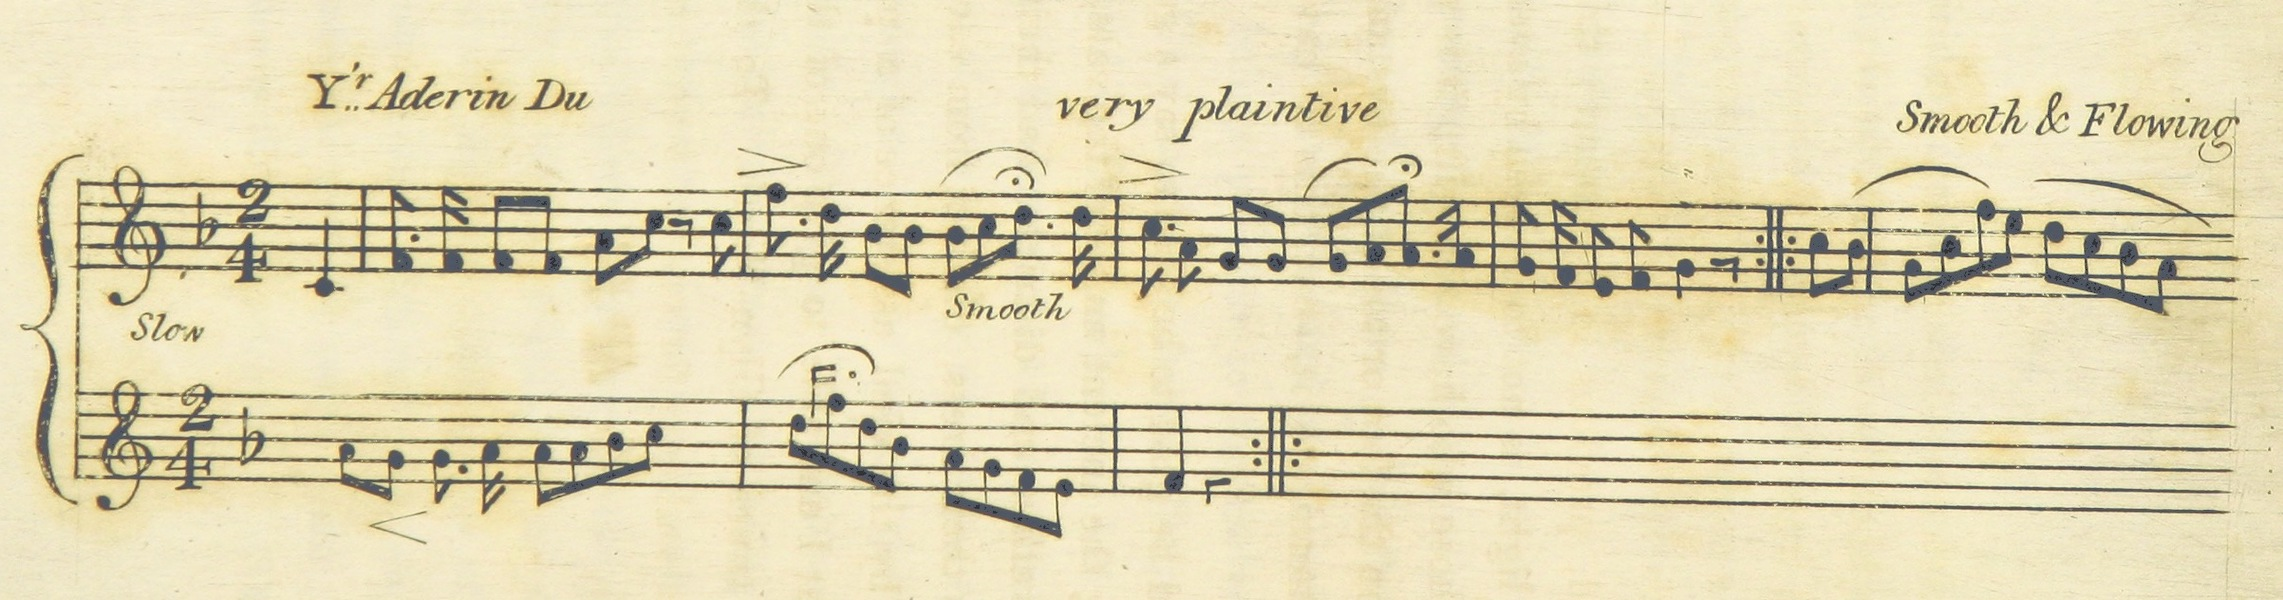 Guide to the Beauties of Glyn Neath - Glyn Neath Music (1835)